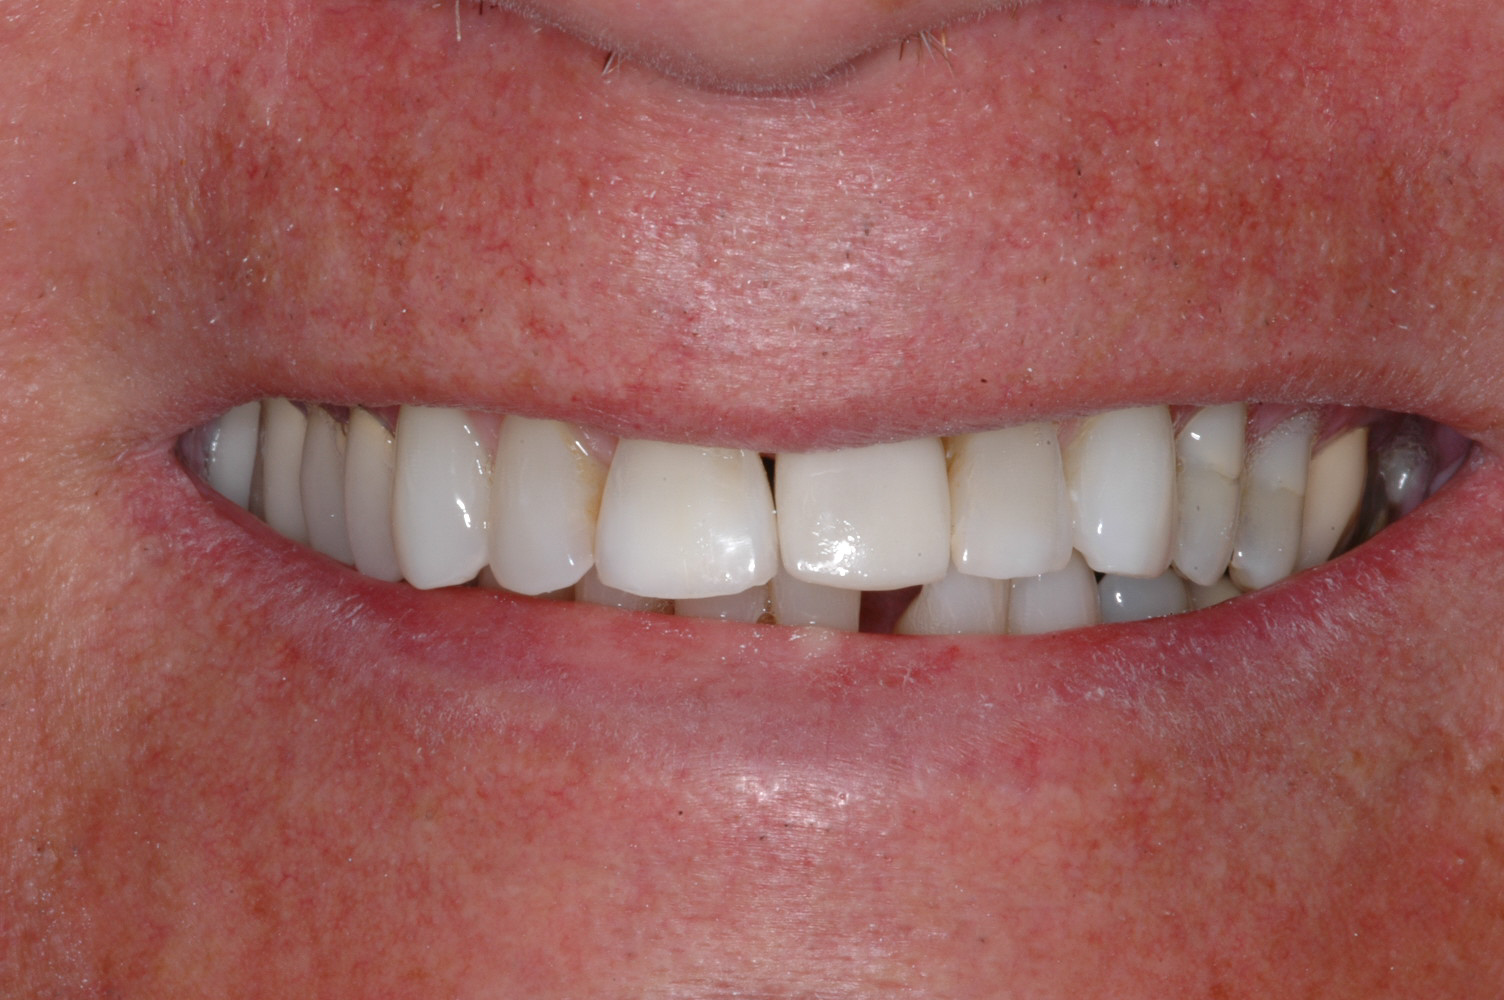 The teeth were whitened and this is the final crown that blends well and has great strength